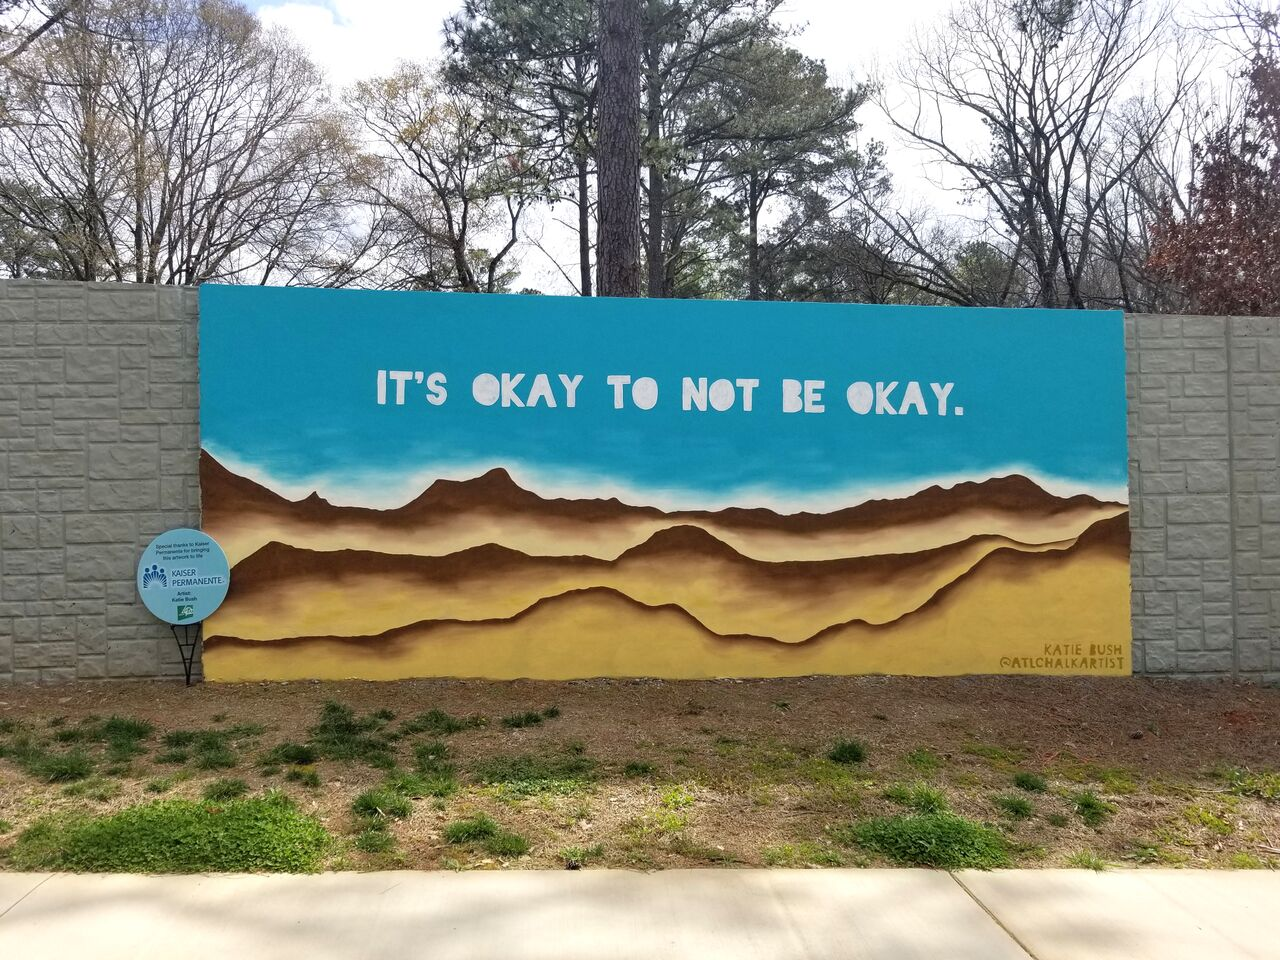 A photo of a new mural along PATH400 in Buckhead.